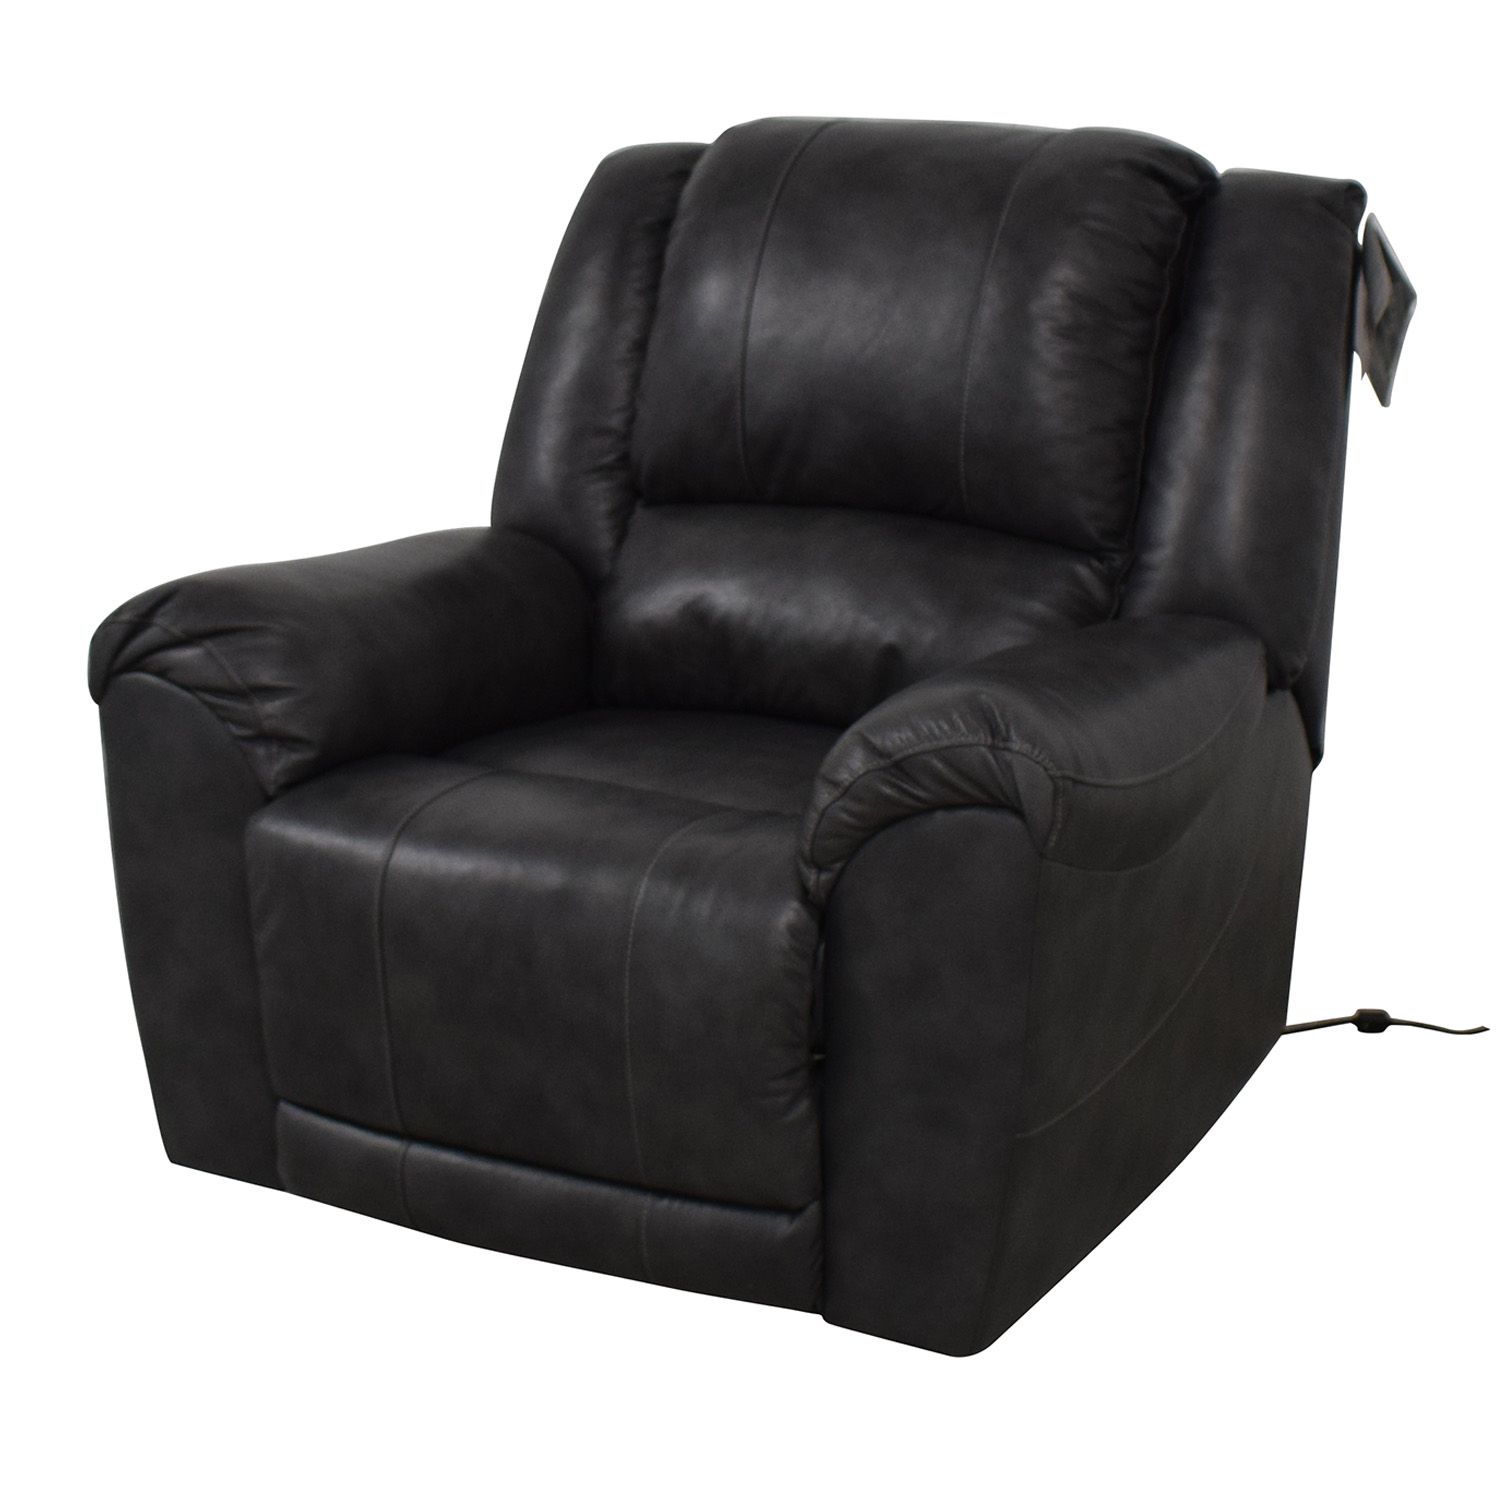 Ashley Furniture Ashley Furniture Persiphone Power Recliner price